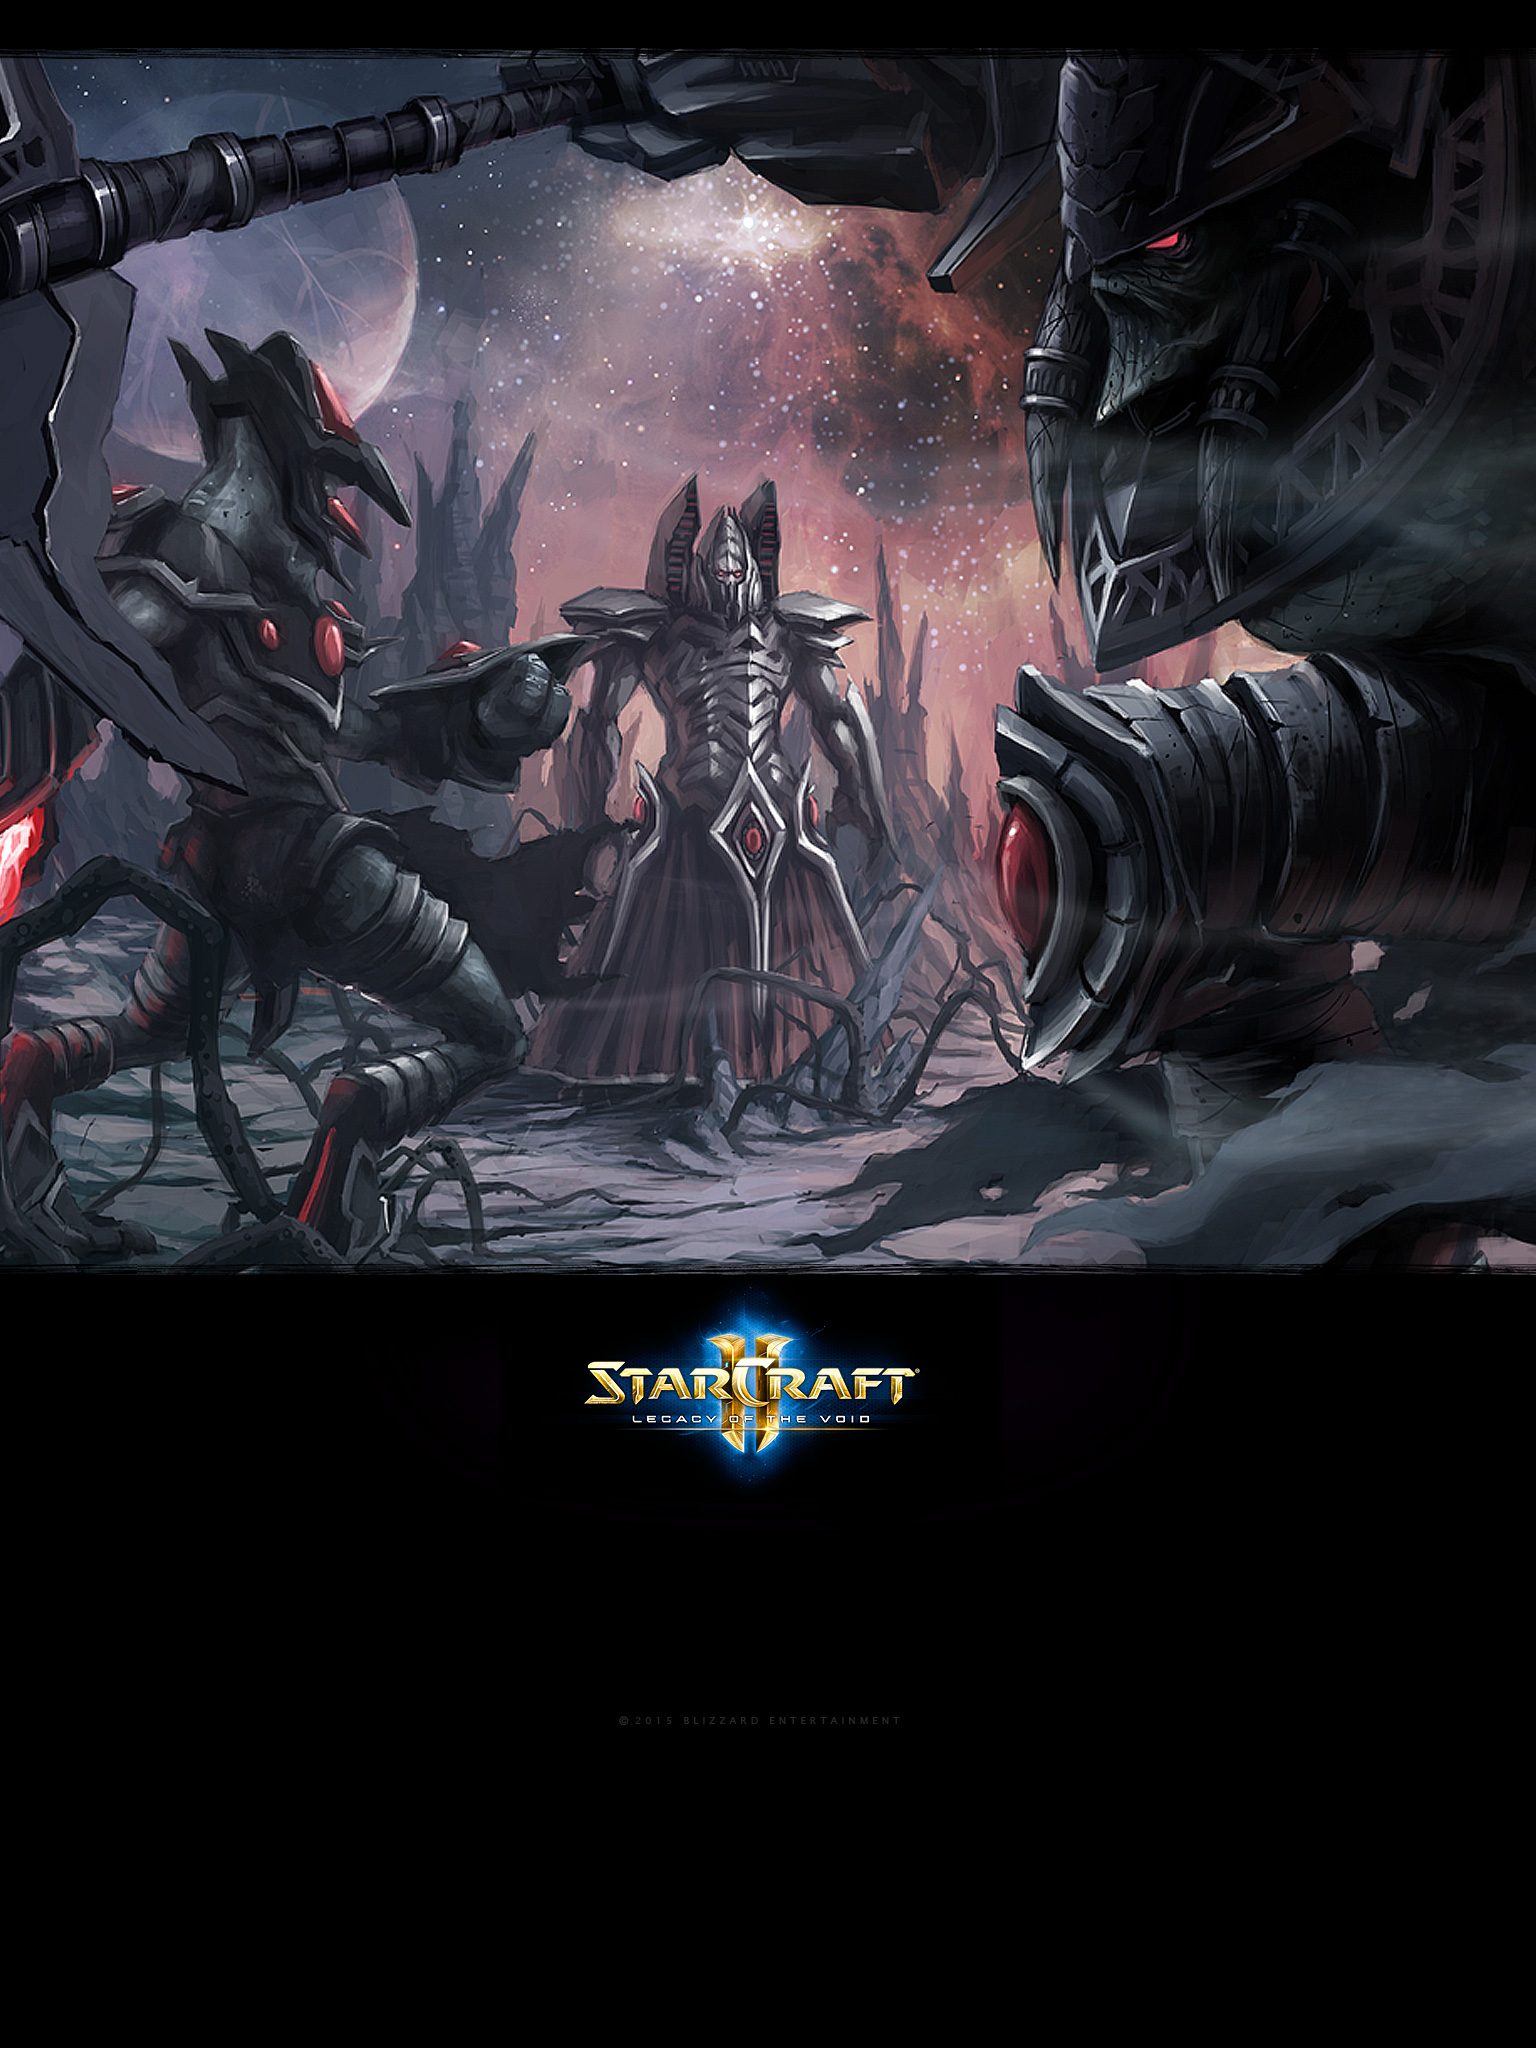 Starcraft Ii Legacy Of The Void 2015 Promotional Art Mobygames